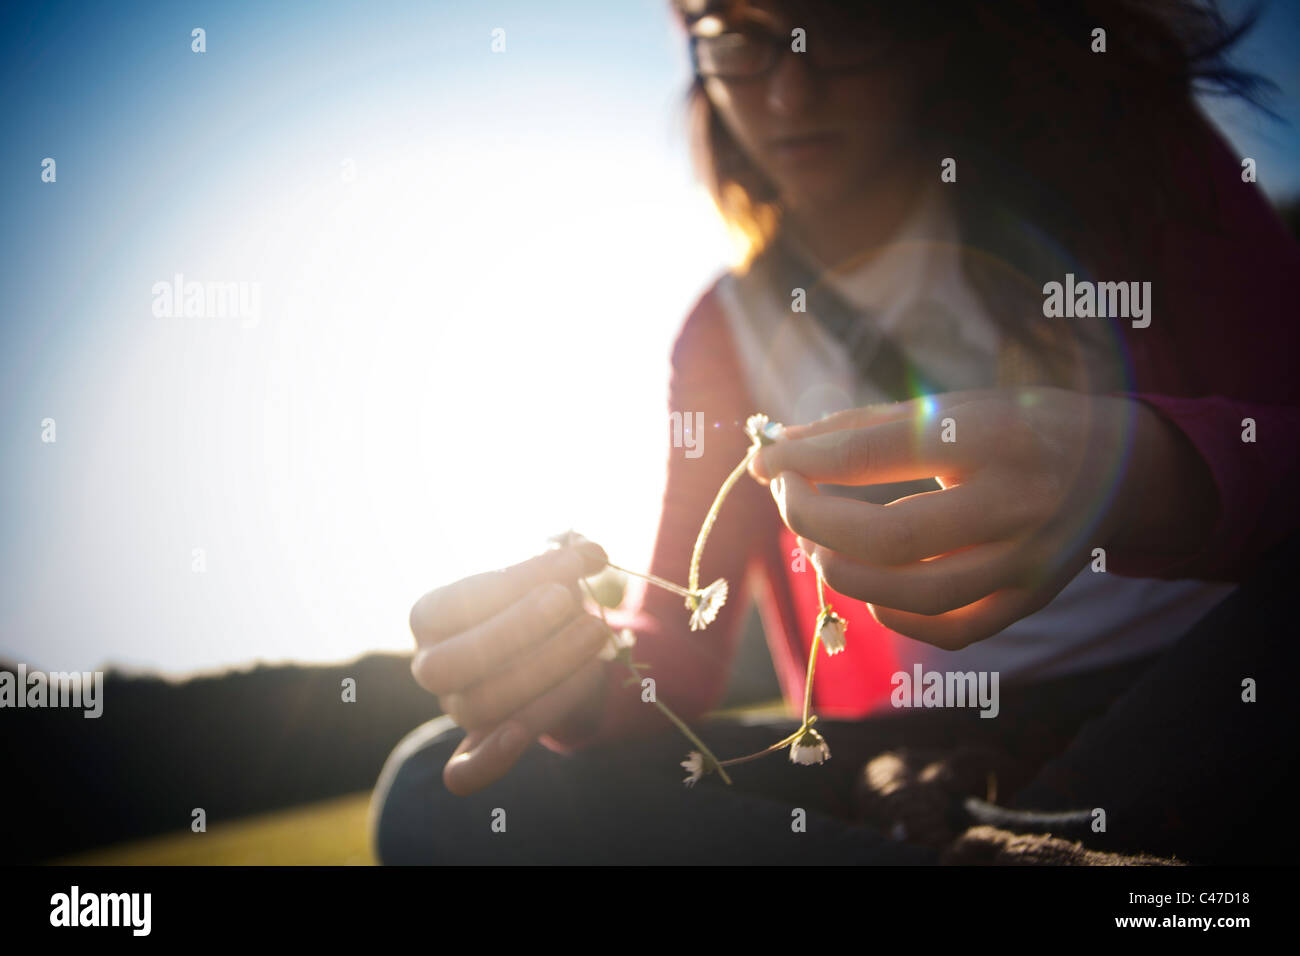 Girl making heart shaped daisy chain - Stock Image